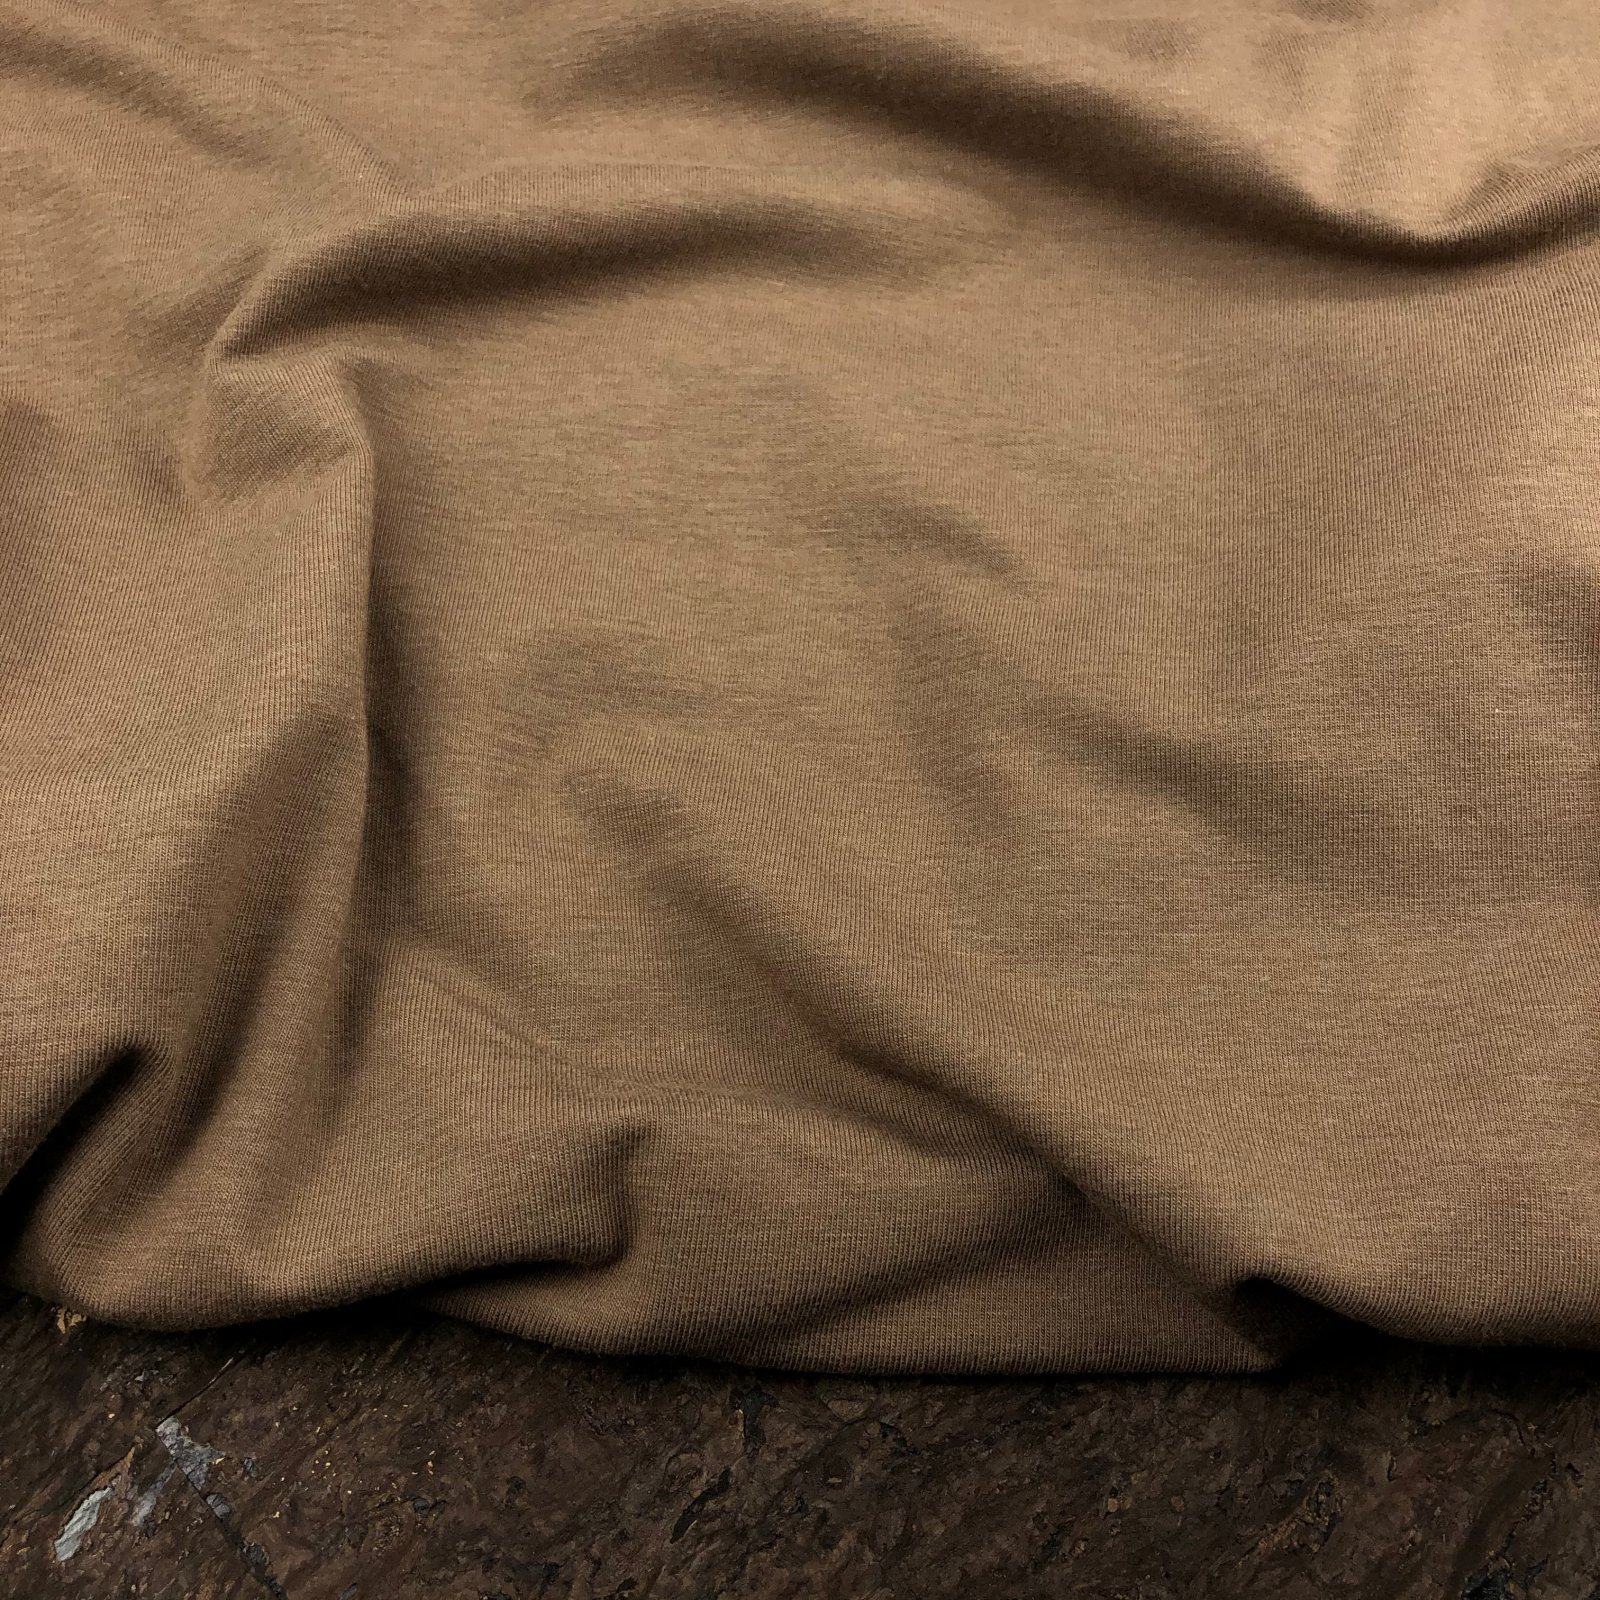 Americano - Bamboo Cotton Jersey Knit - 200 gsm - Kendor